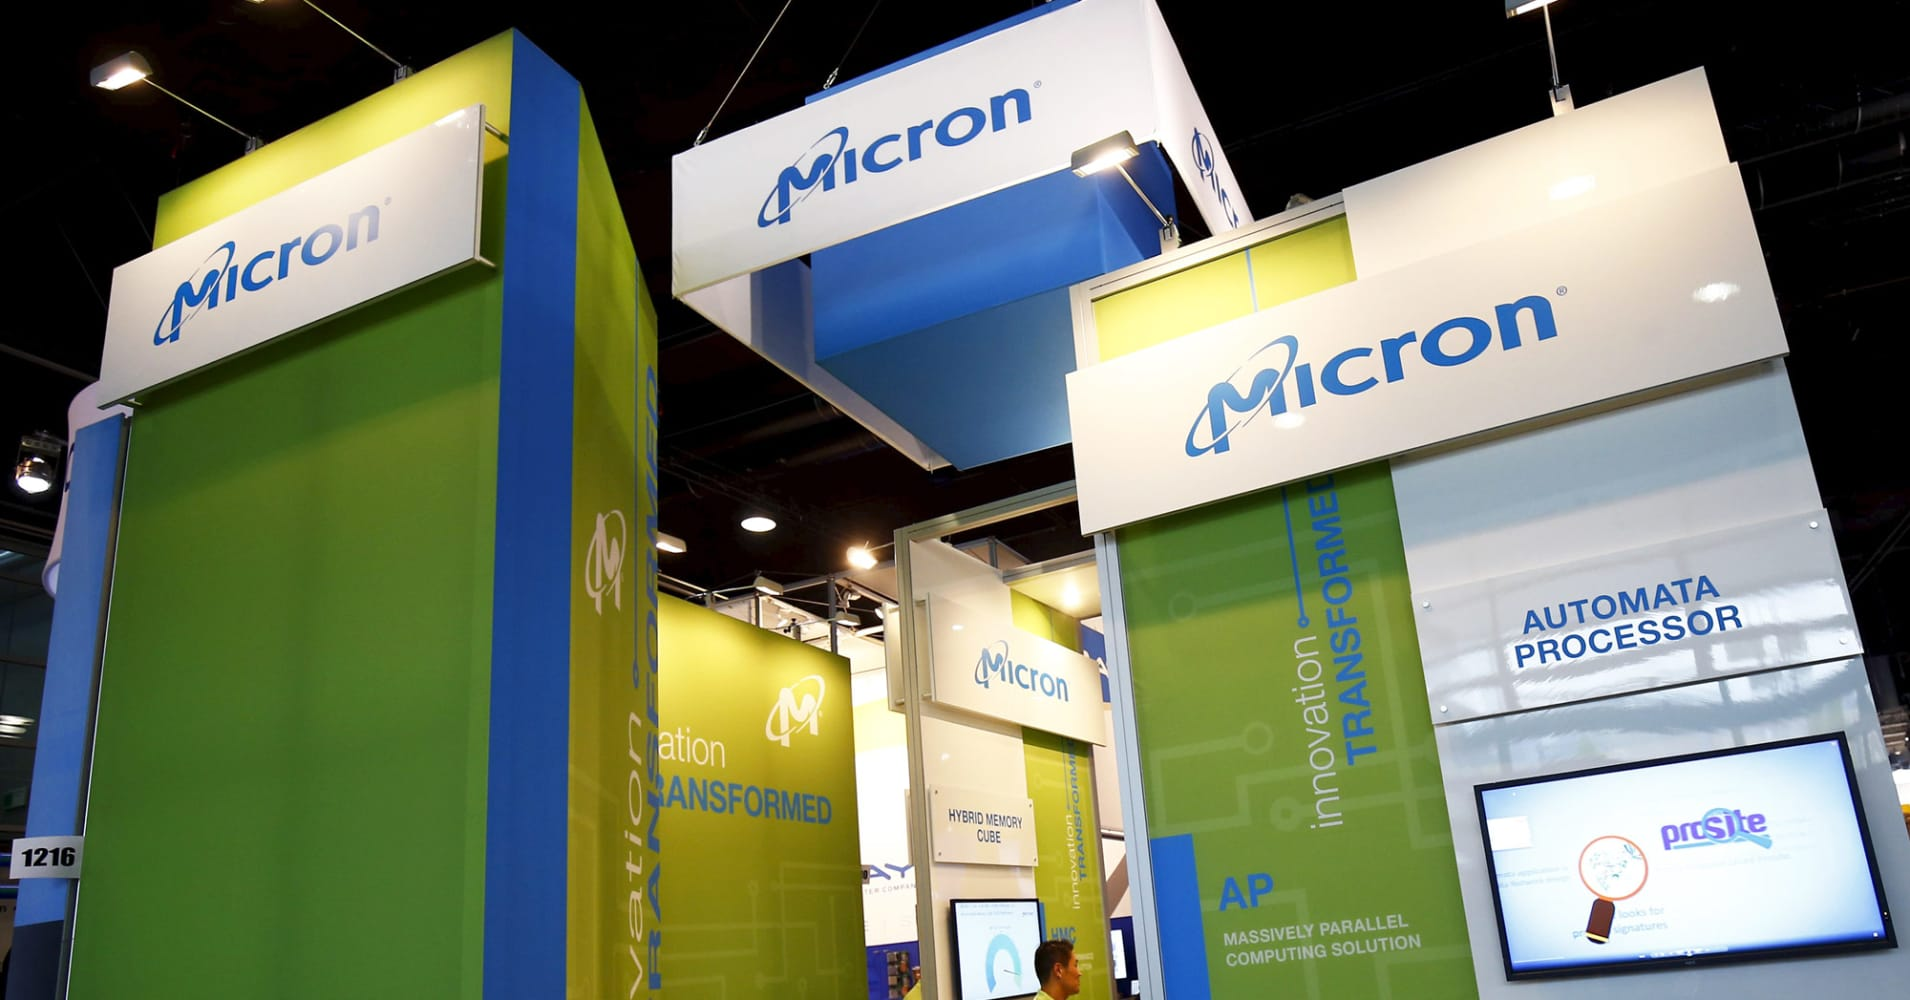 Micron is surging, but chart points to a more than 50% drop, technician says